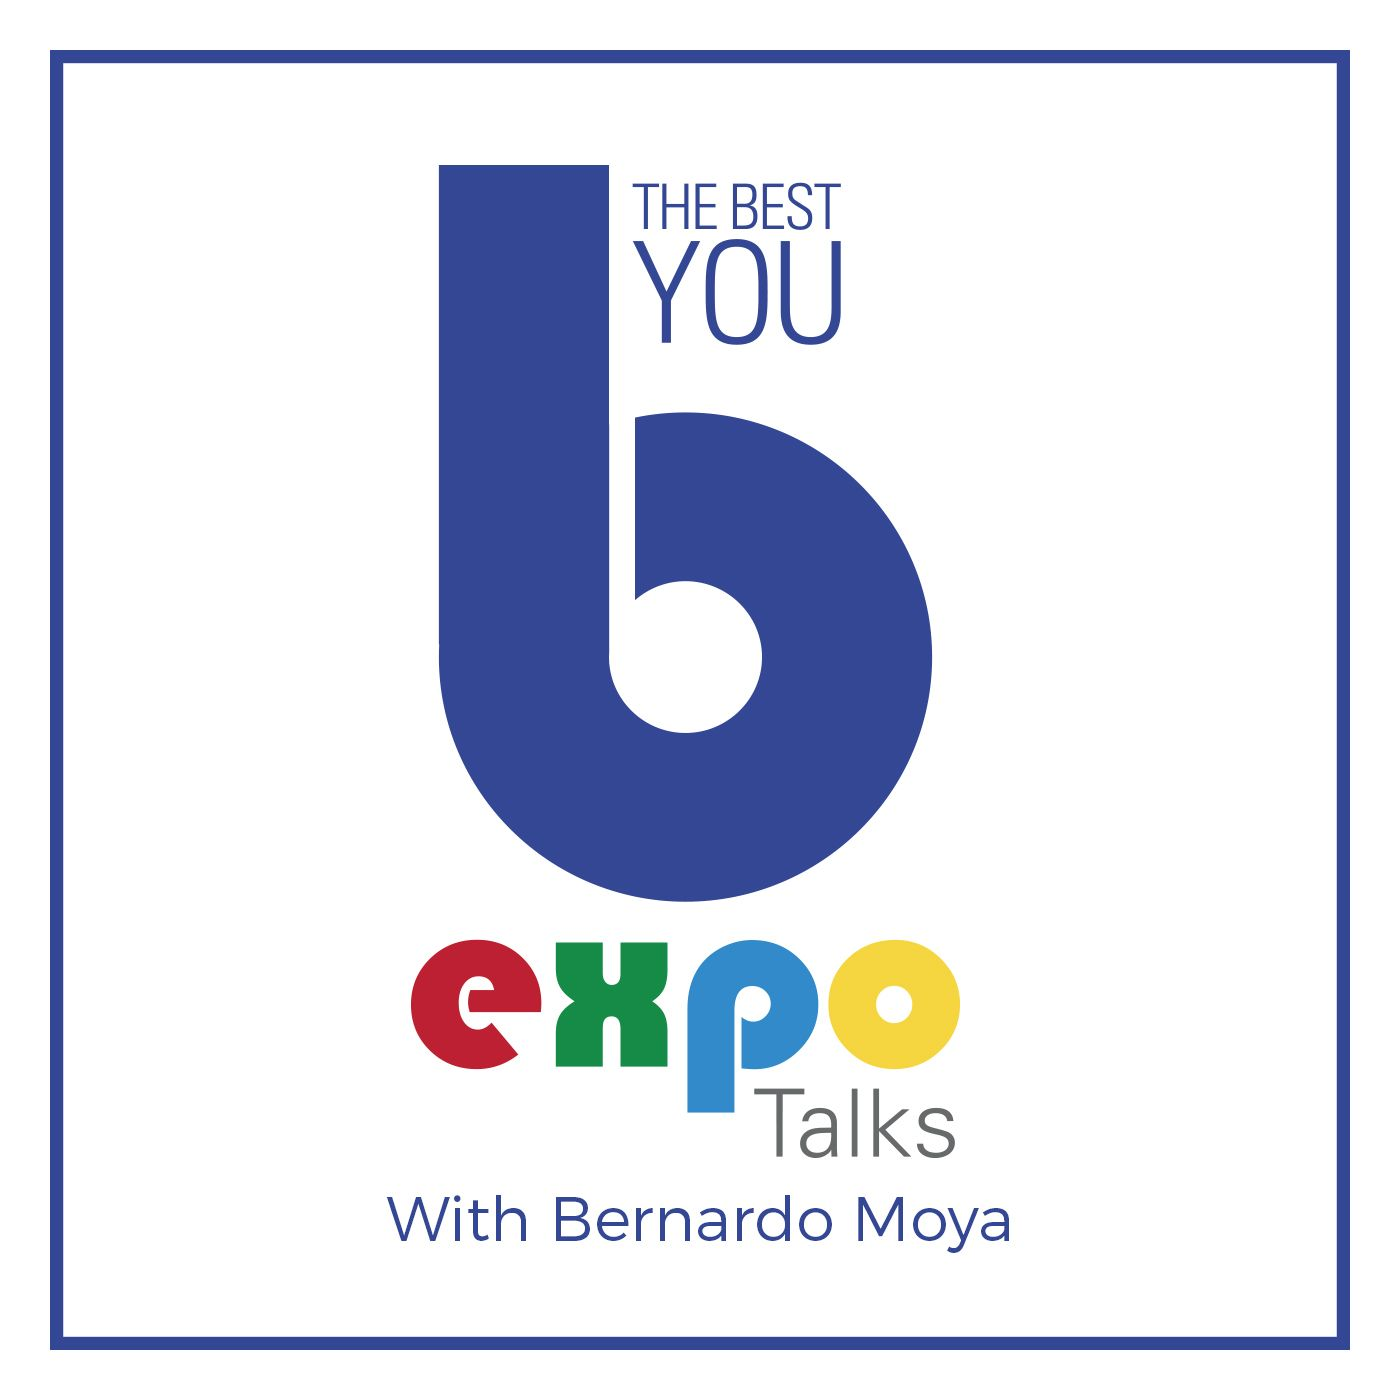 Bernardo Moya's The Best You EXPO Talks